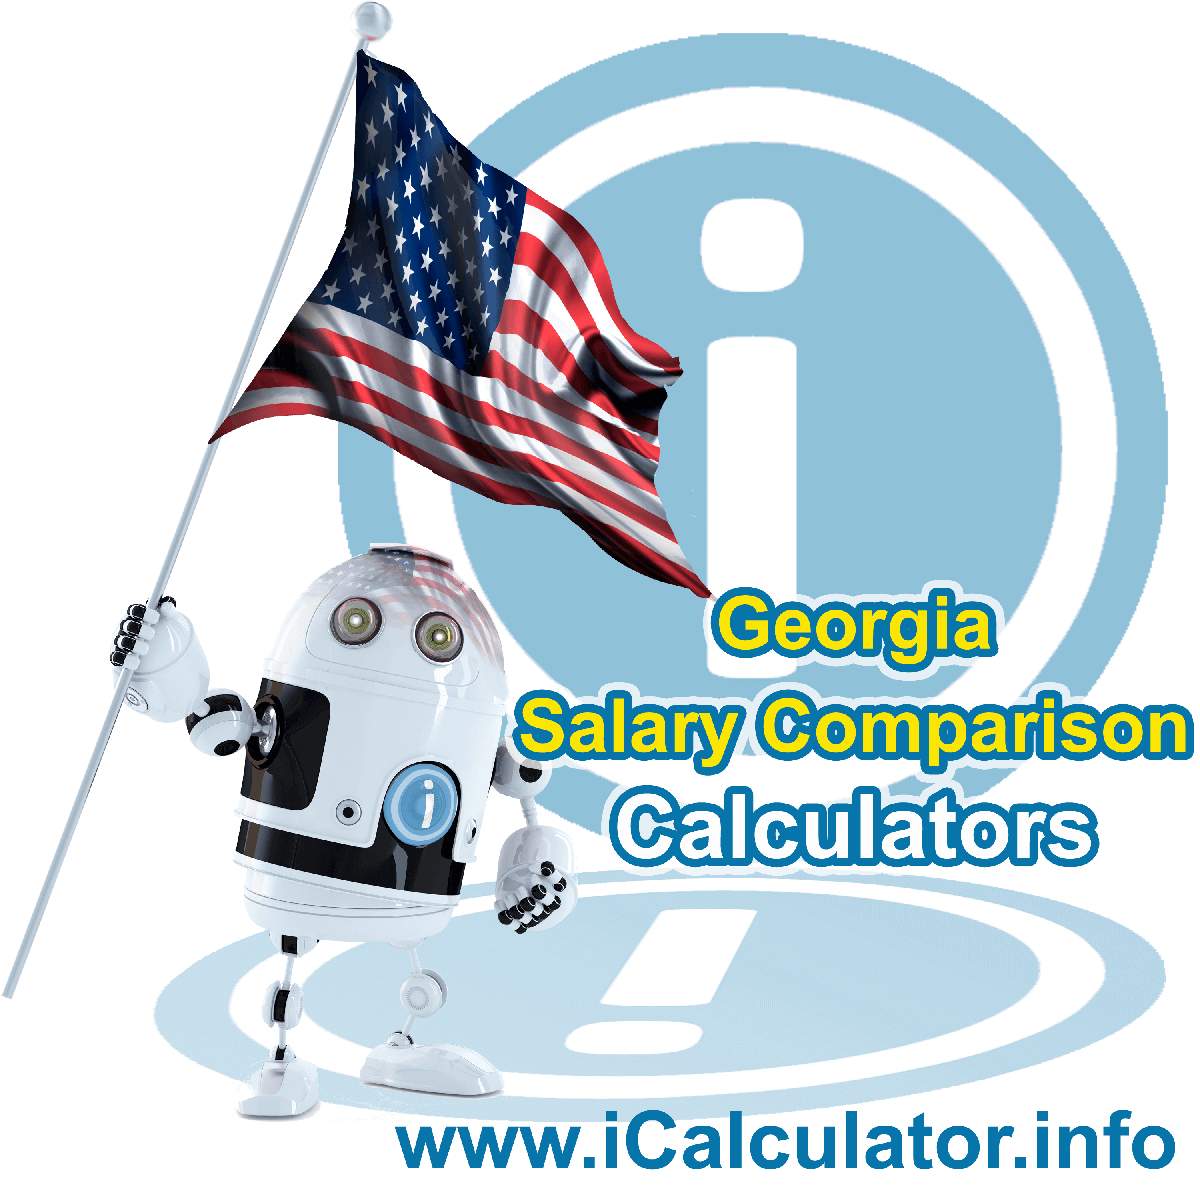 Georgia Salary Comparison Calculator 2019 | iCalculator | The Georgia Salary Comparison Calculator allows you to quickly calculate and compare upto 6 salaries in Georgia or between other states for the 2019 tax year and historical tax years. Its an excellent tool for jobseekers, pay raise comparison and comparison of salaries between different US States